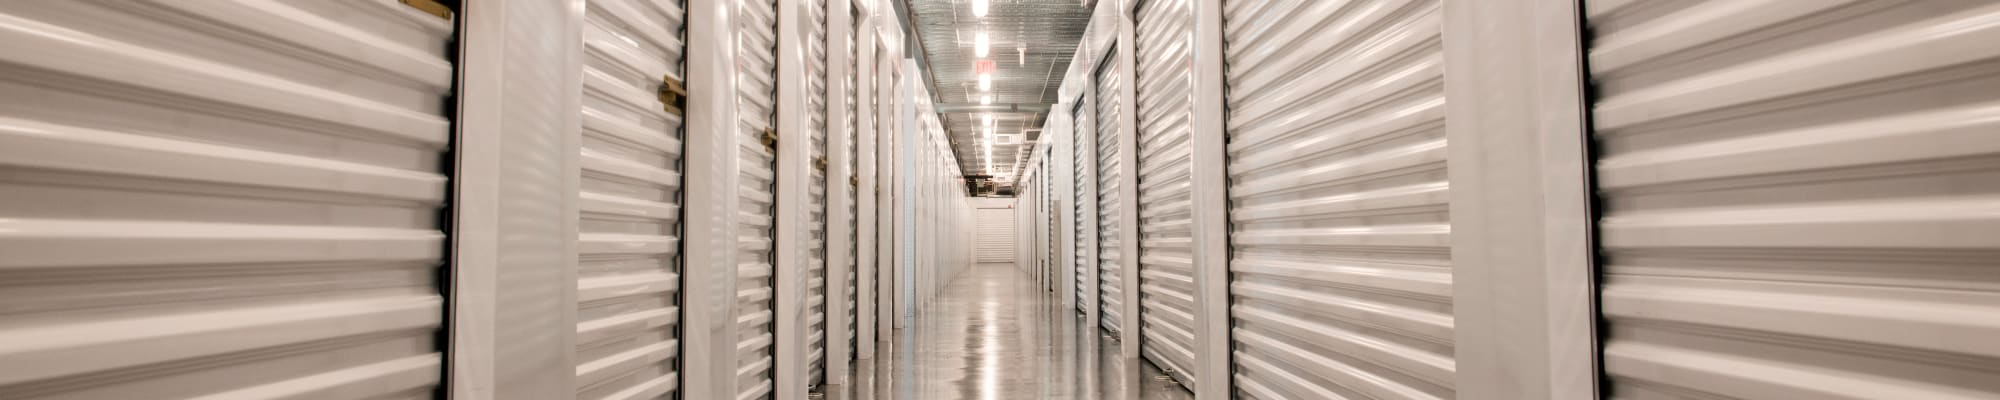 What we offer at Spacebox Storage Crestview in Crestview, Florida.